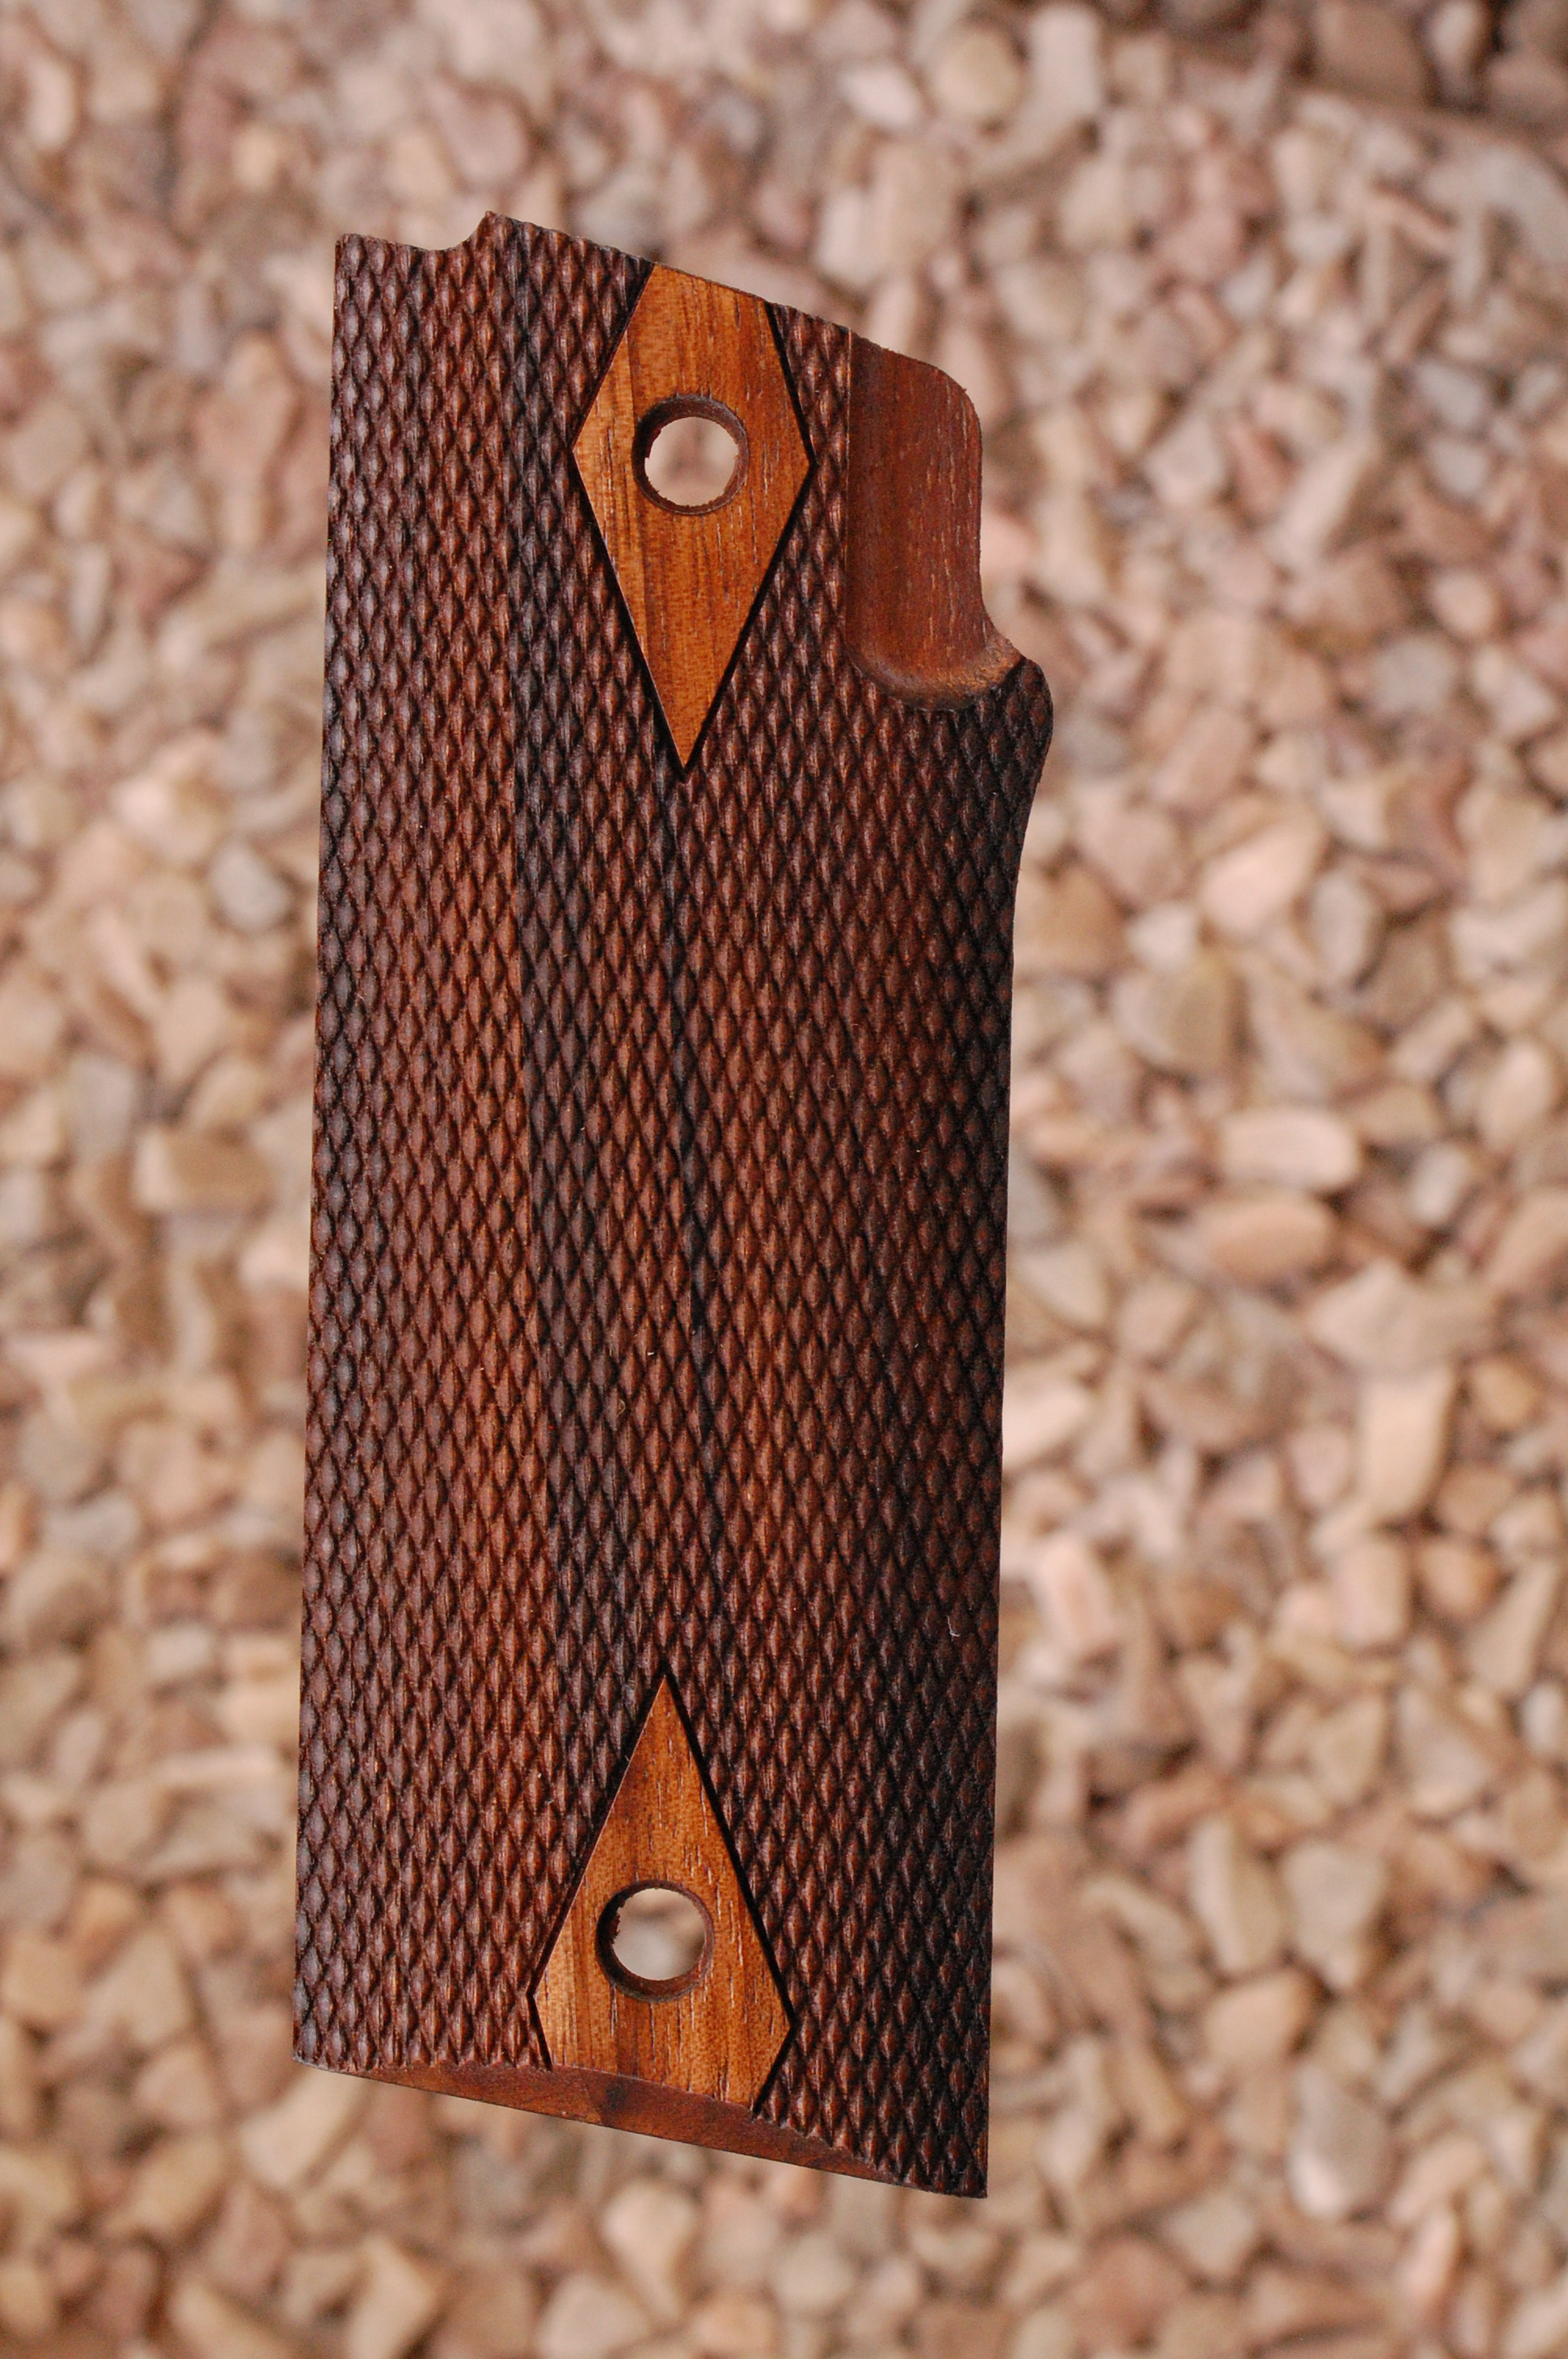 COONAN B grips (checkered) - full size